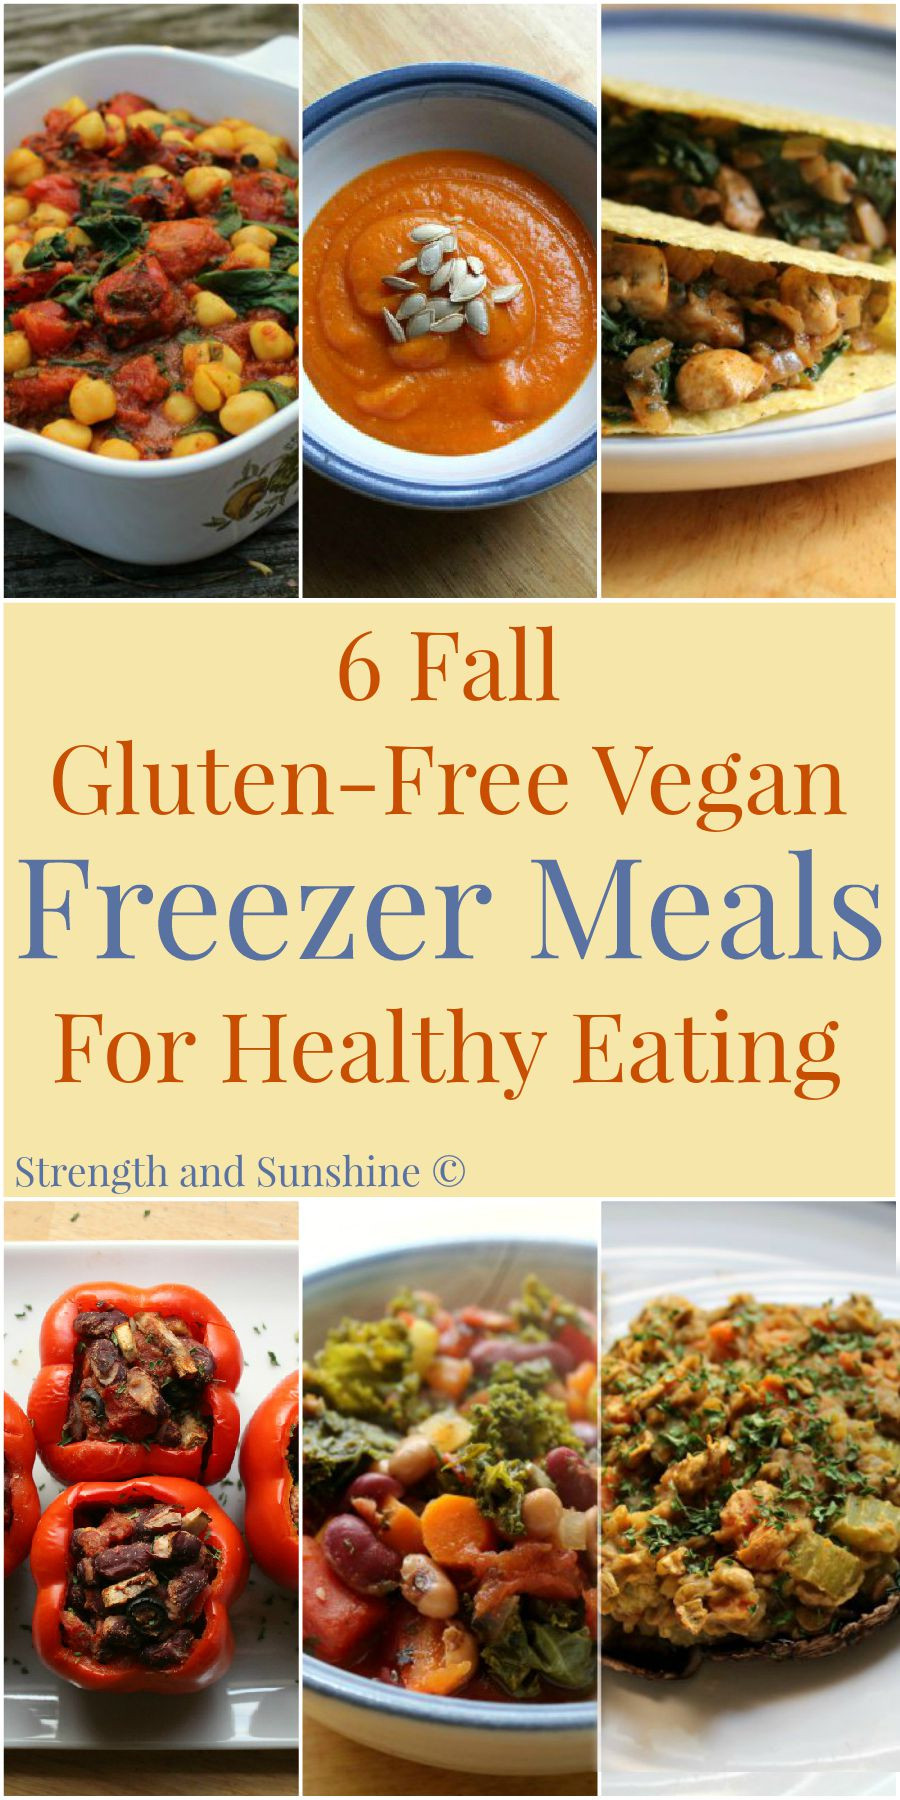 Healthy Vegan Gluten Free Recipes  6 Fall Gluten Free Vegan Freezer Meals For Healthy Eating